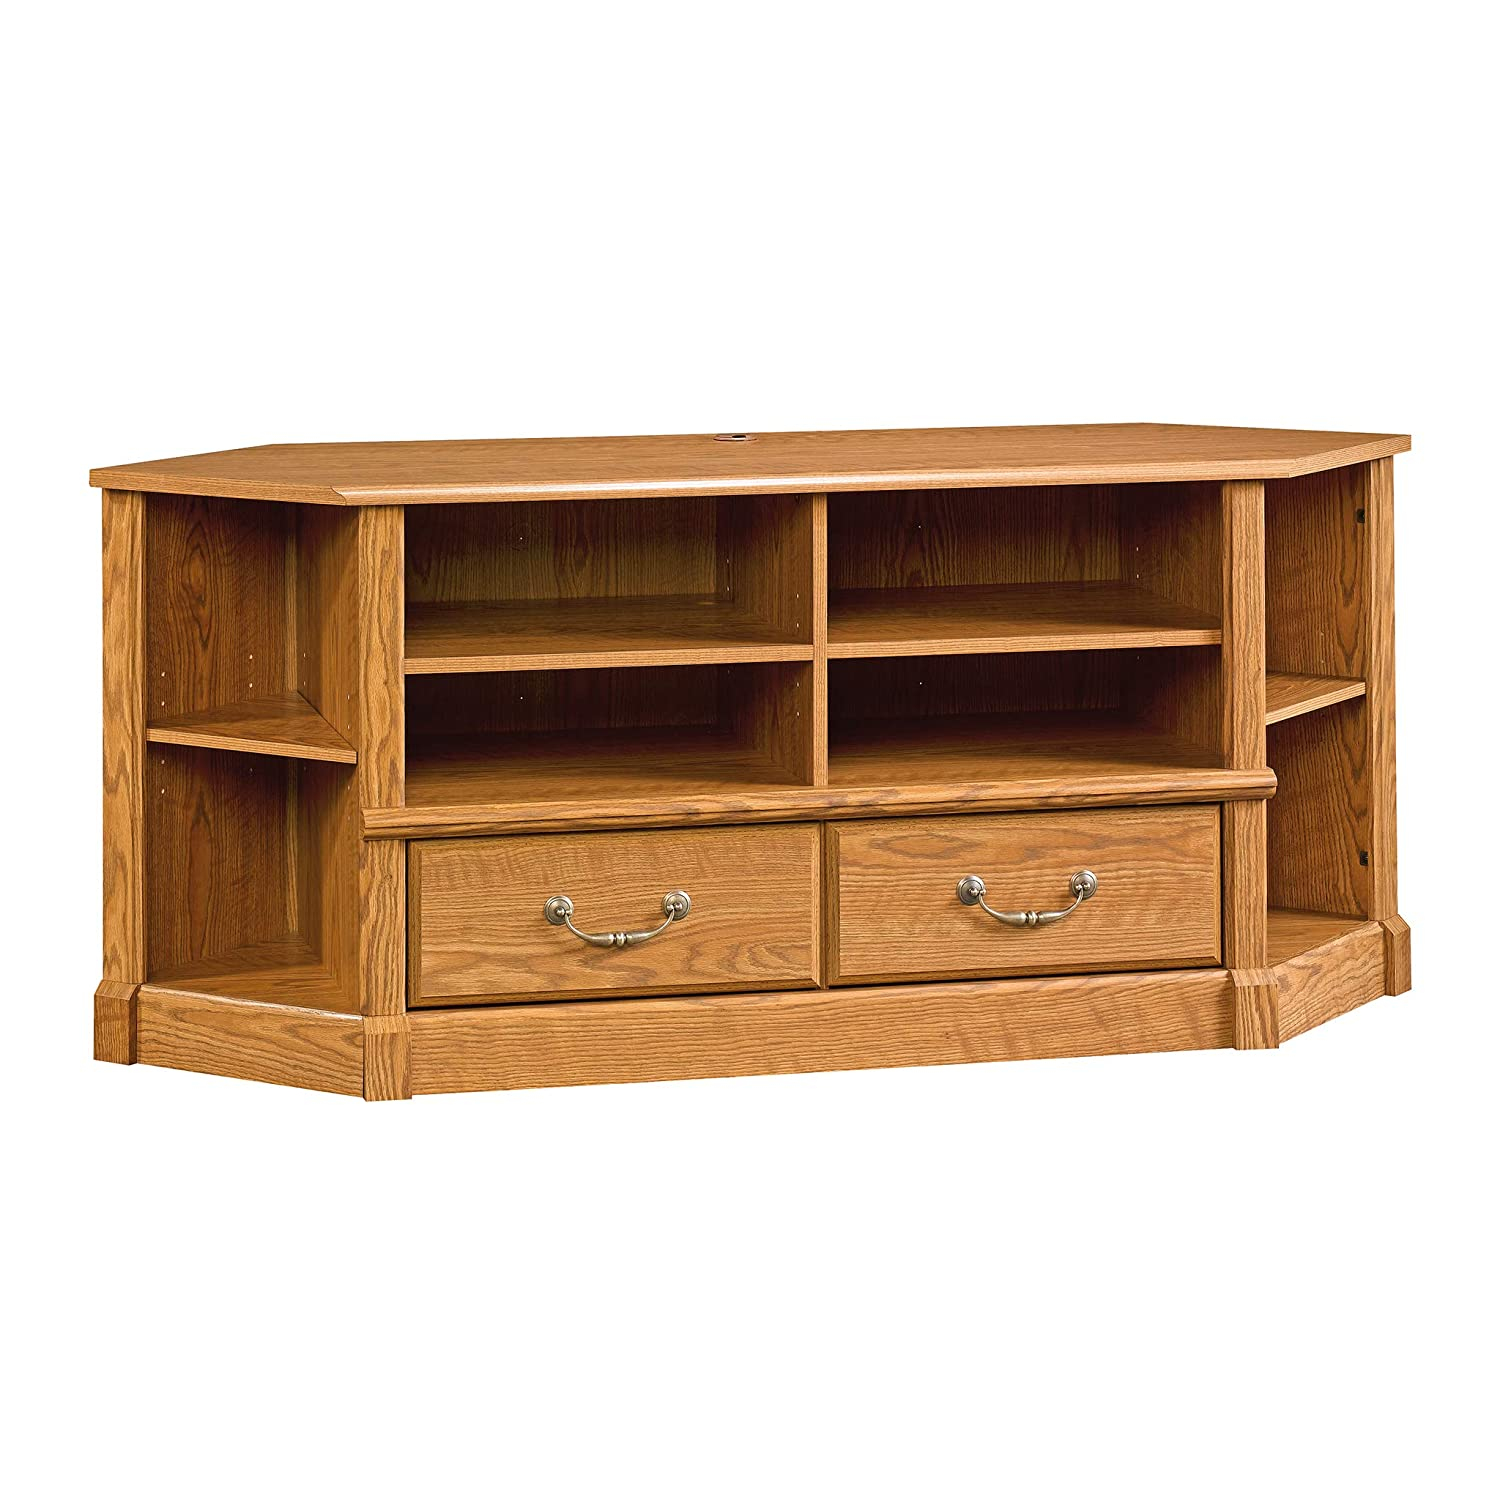 Sauder Orchard Hills Corner Entertainment Credenza, For TV s up to 50 , Carolina Oak finish